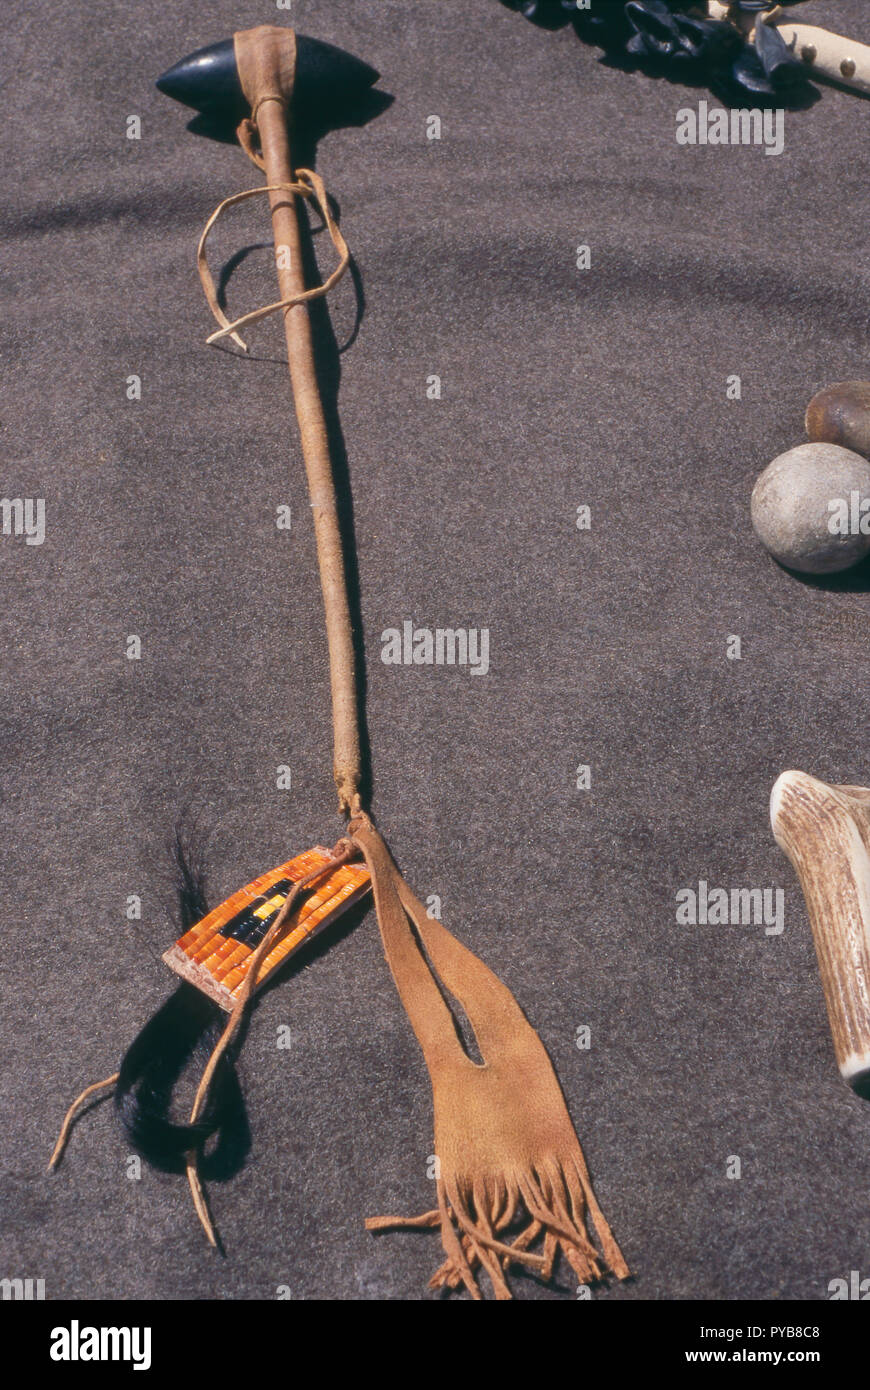 Native American stone & beaded implement, living history display at Fort Mandan, North Dakota. Photograph - Stock Image